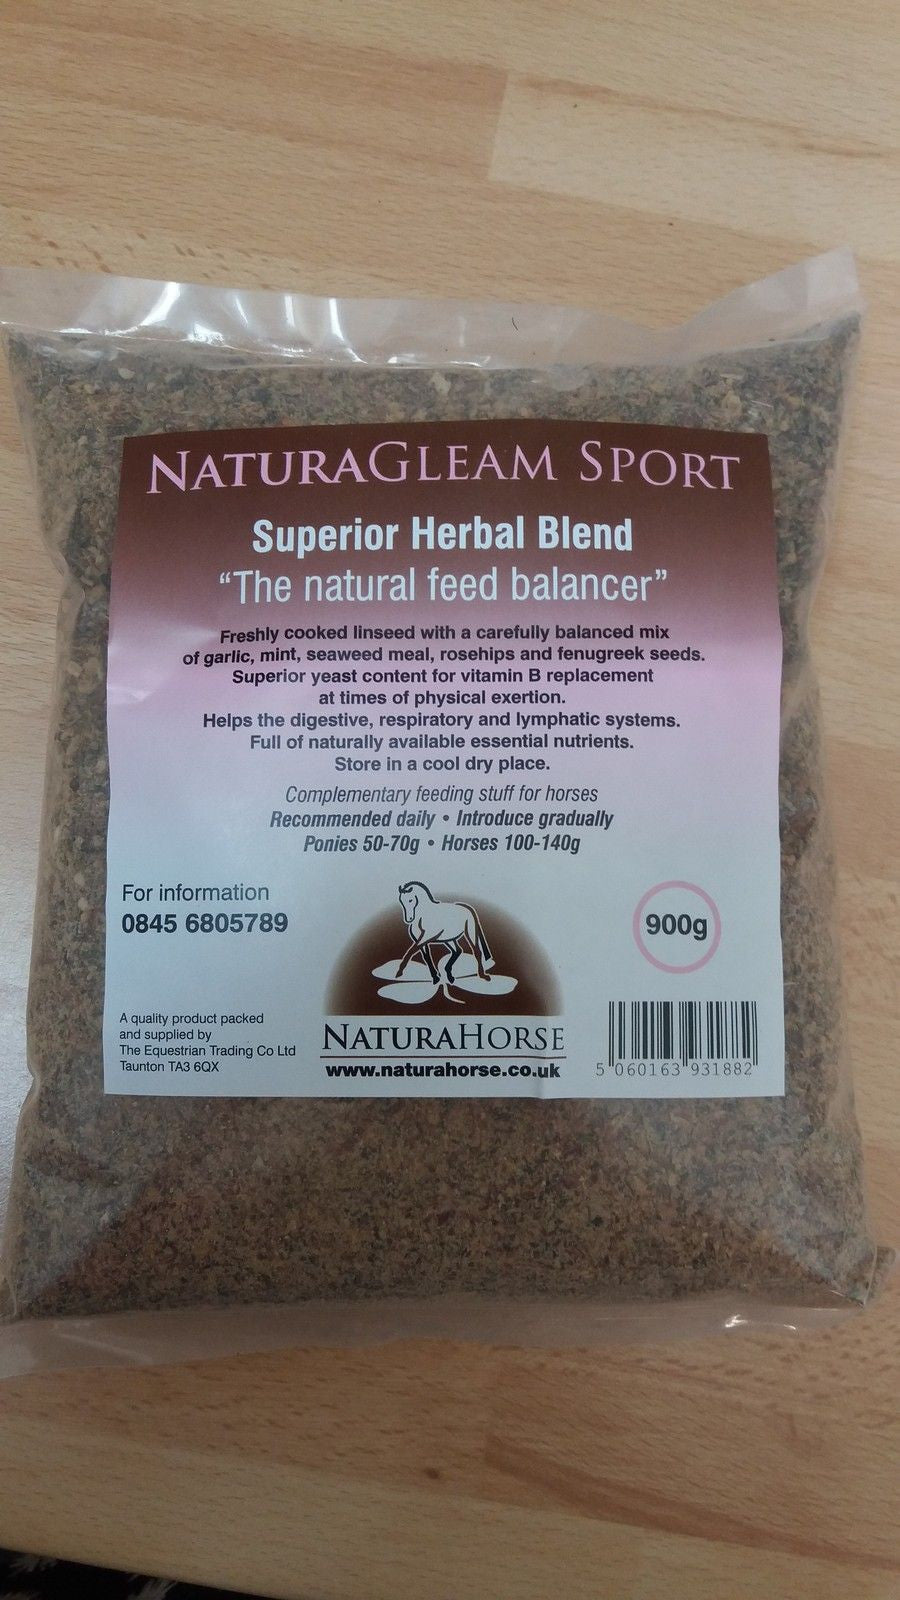 Natura Gleam Sport (Natural Feed Balancer)